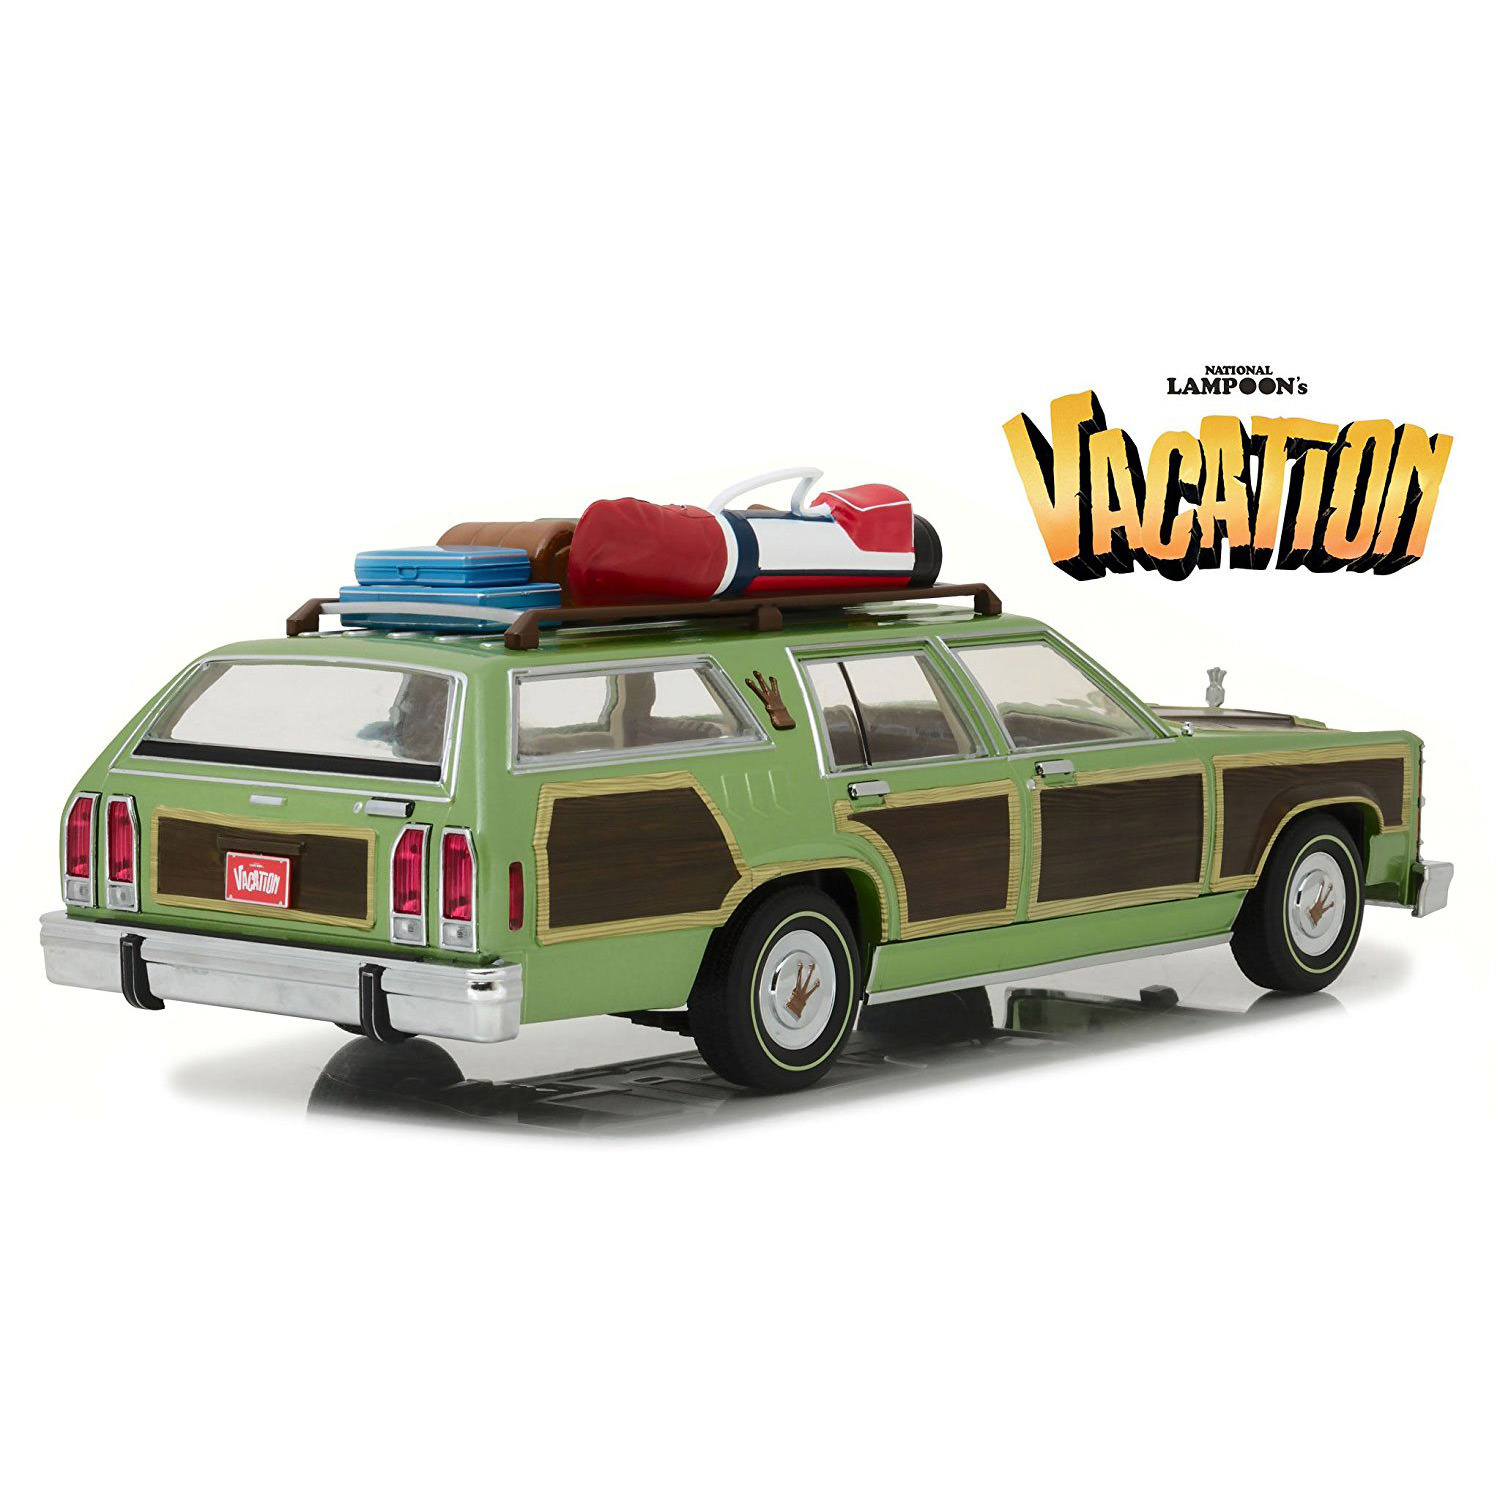 Greenlight Artisan Collection National Lampoon S Vacation 1 18 Wagon